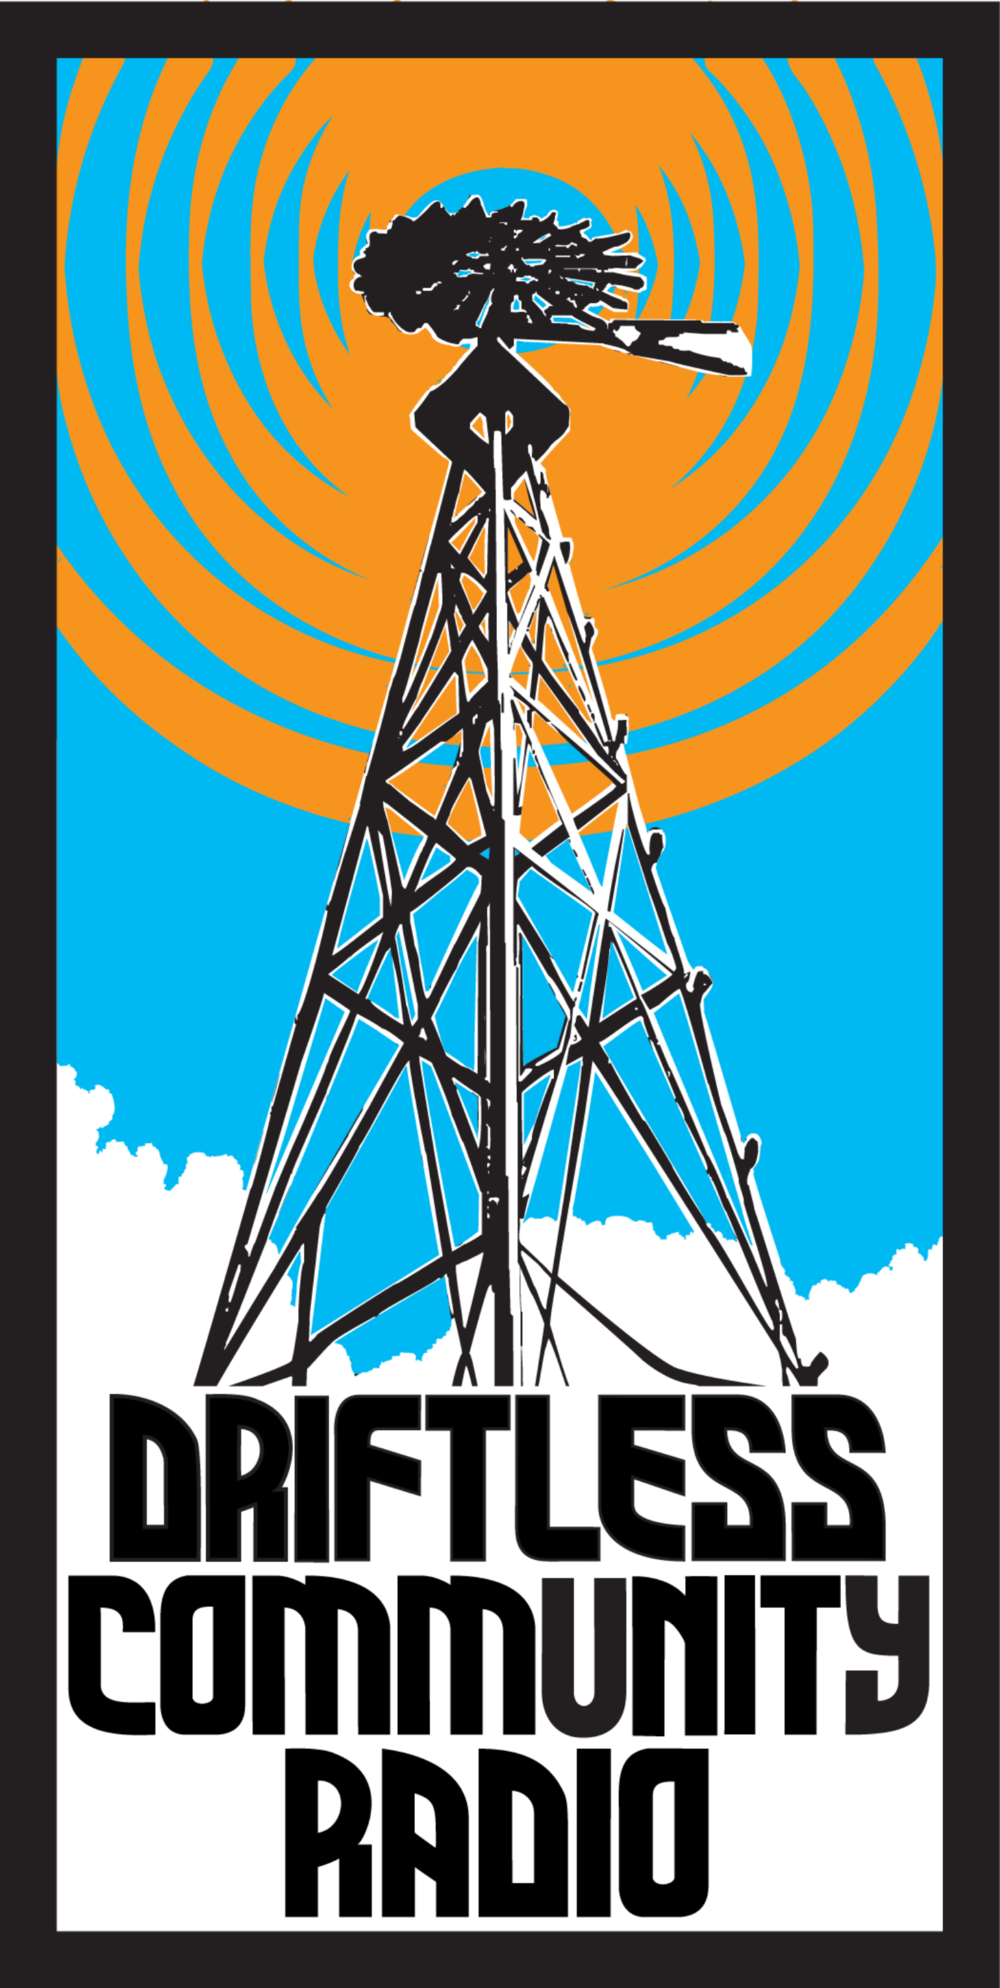 Drifts Community Radio